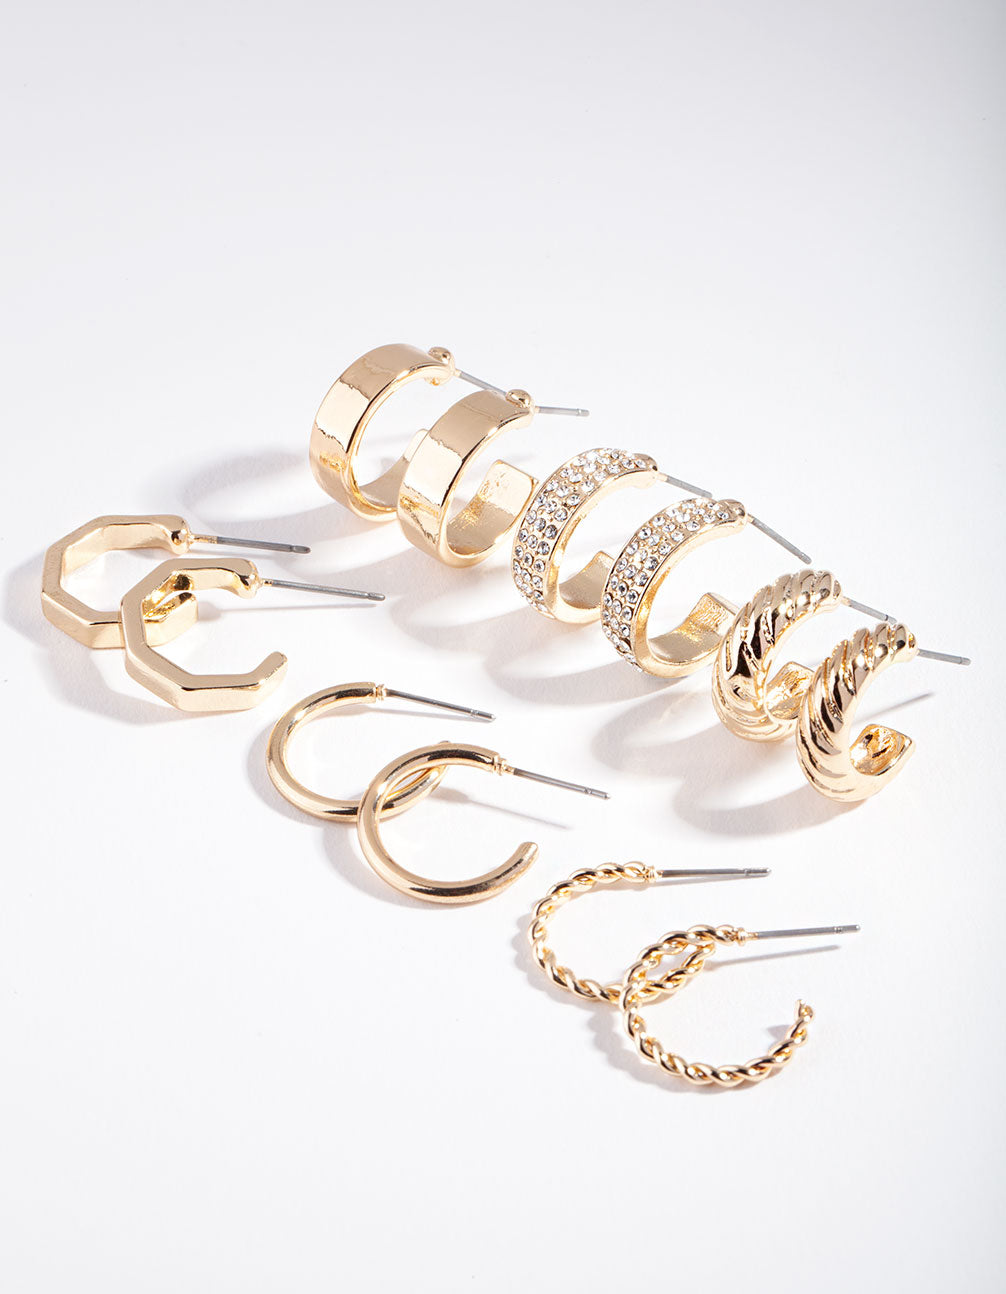 Gold Textured and Diamante Hoop Earring 6 Pack